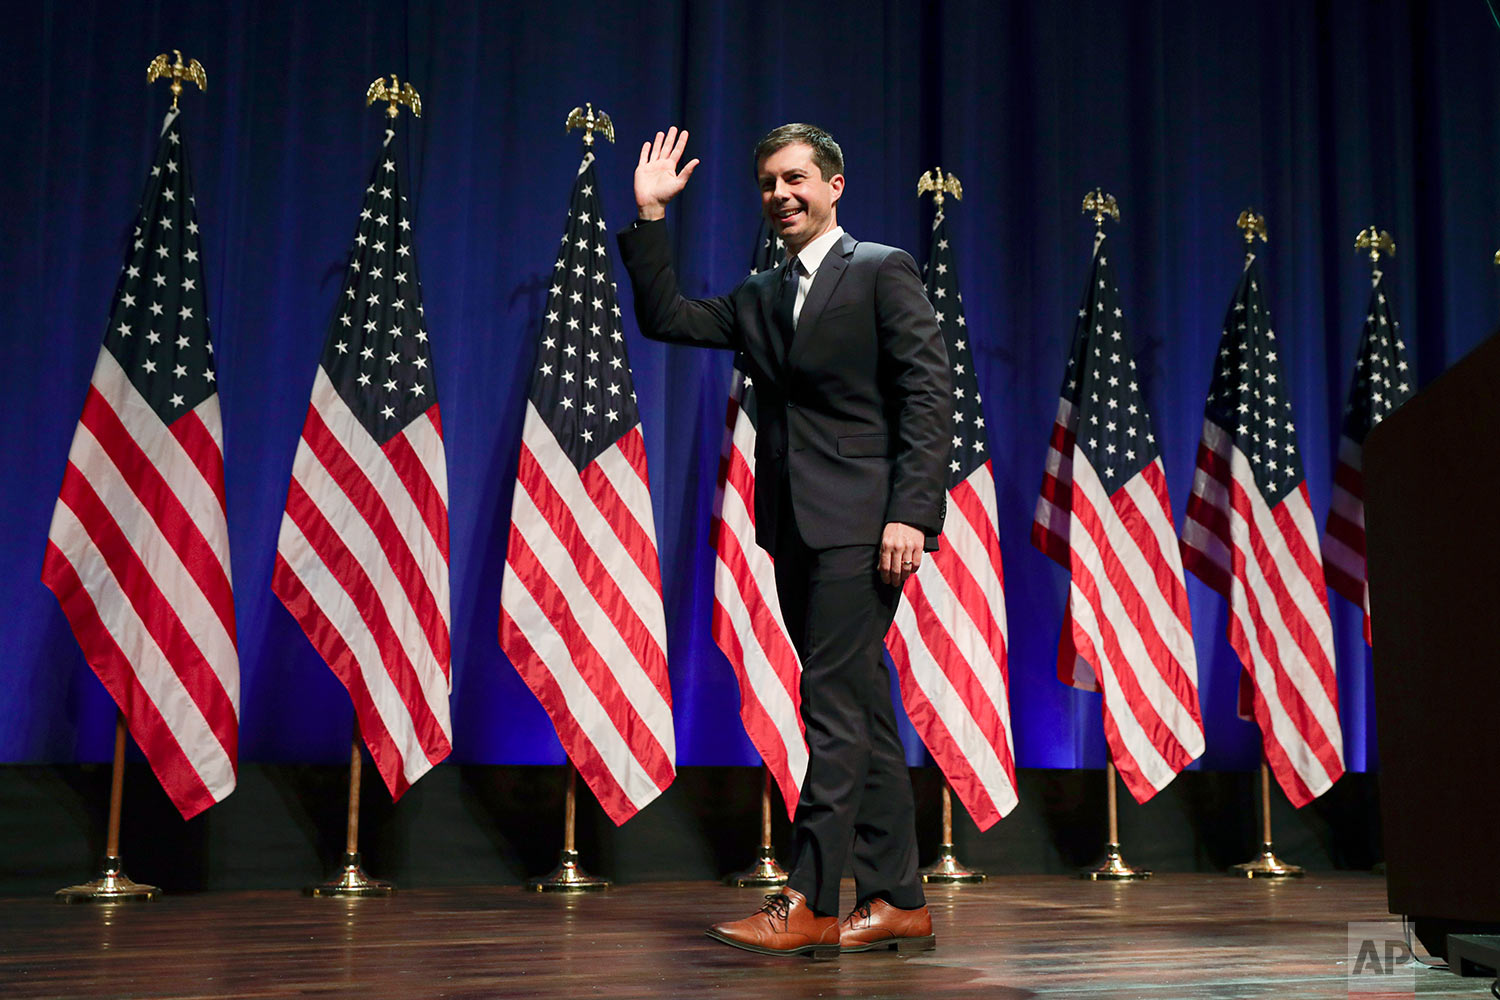 In this Tuesday, June 11, 2019 file photo, Democratic presidential candidate Mayor Pete Buttigieg waves at Indiana University Auditorium in Bloomington, Ind., to speak on foreign policy and national security. (AP Photo/Michael Conroy)